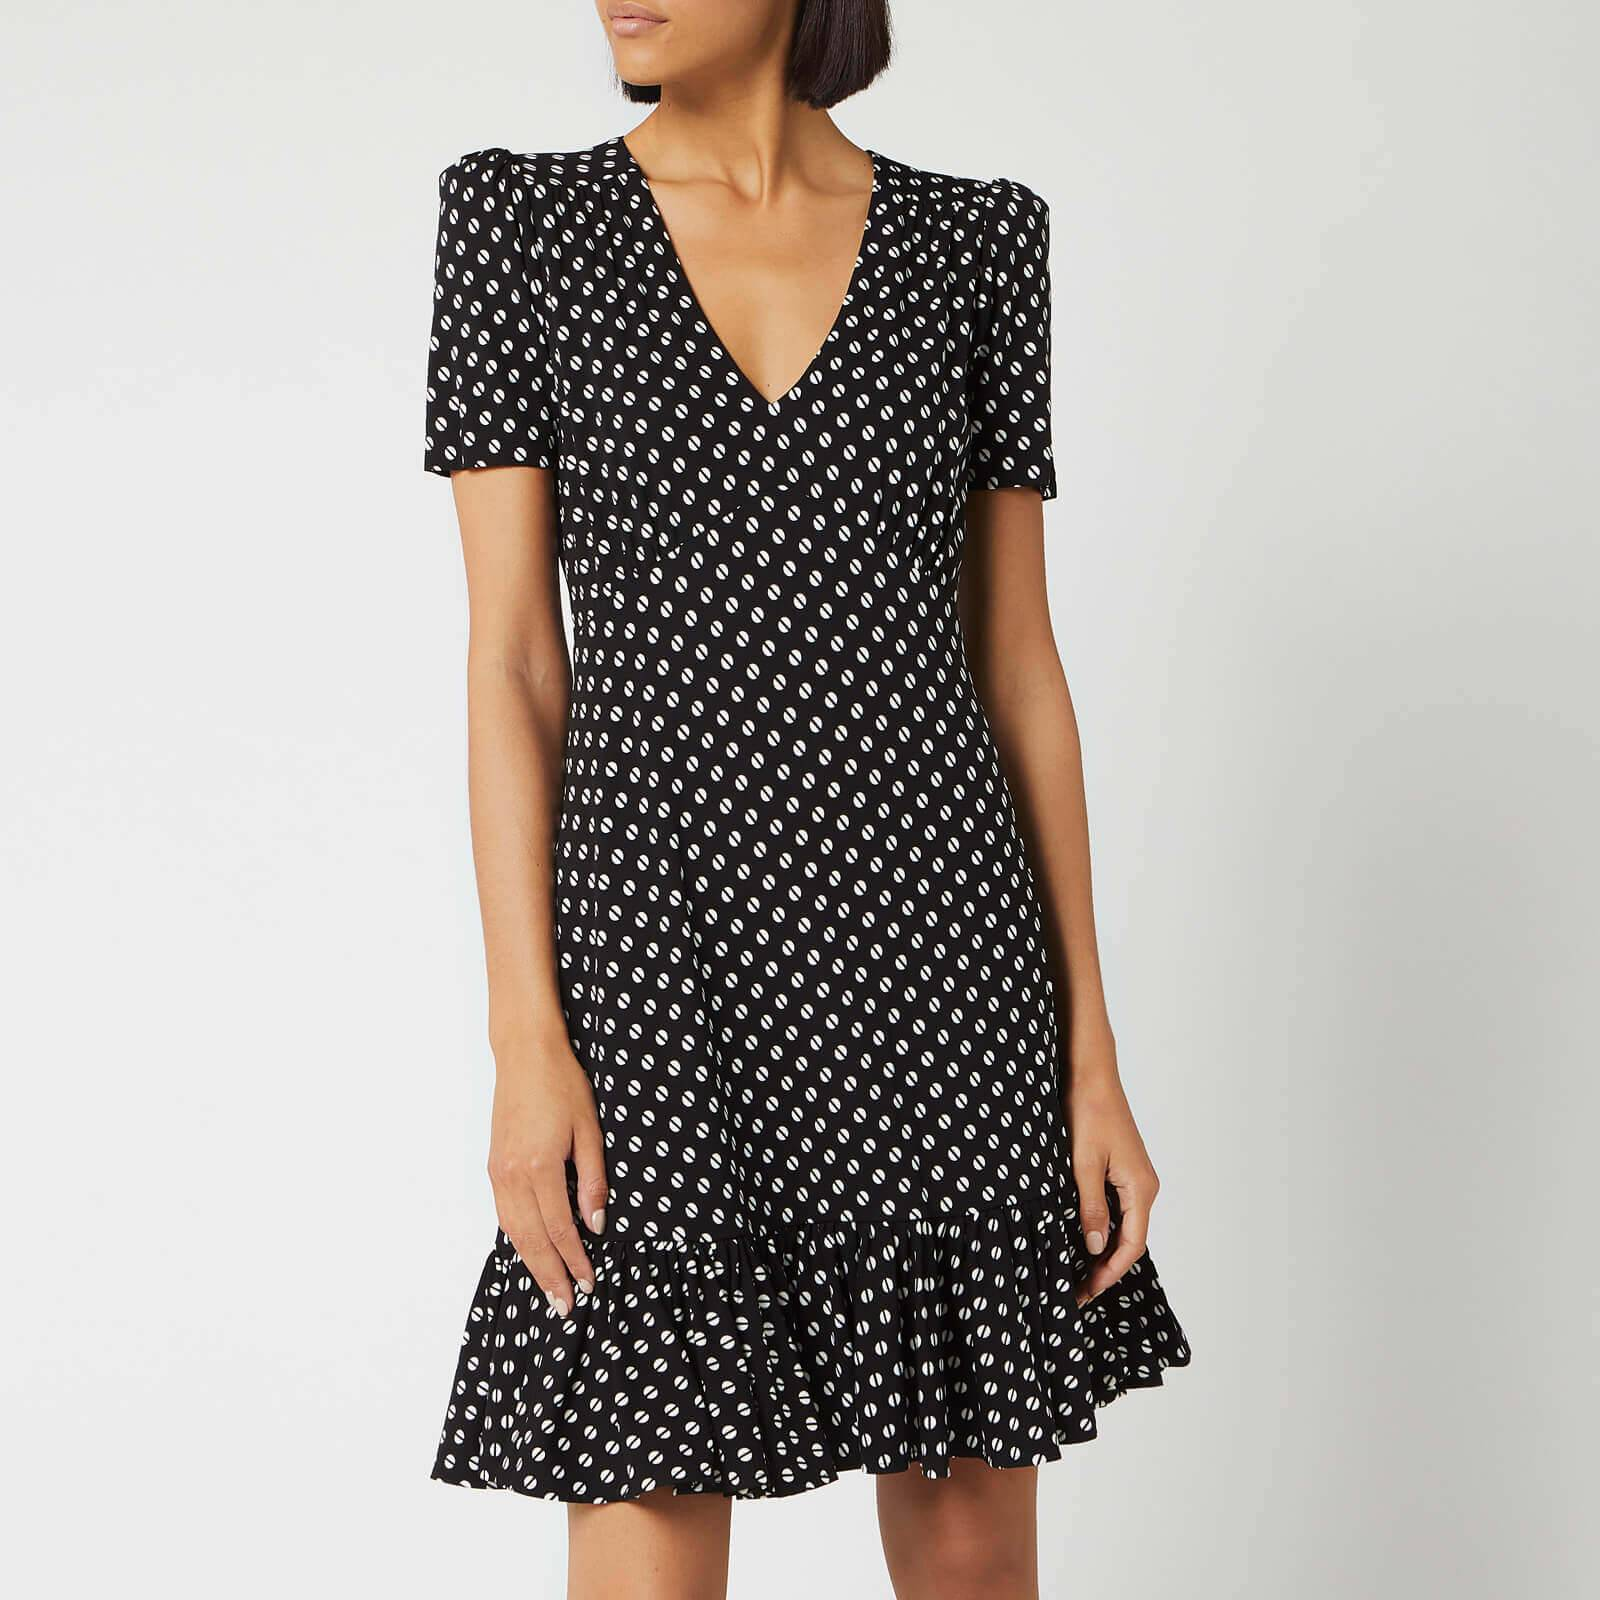 MICHAEL MICHAEL KORS Women's Dot Ruffle V Neck Dress - Black/Bone - L - Black